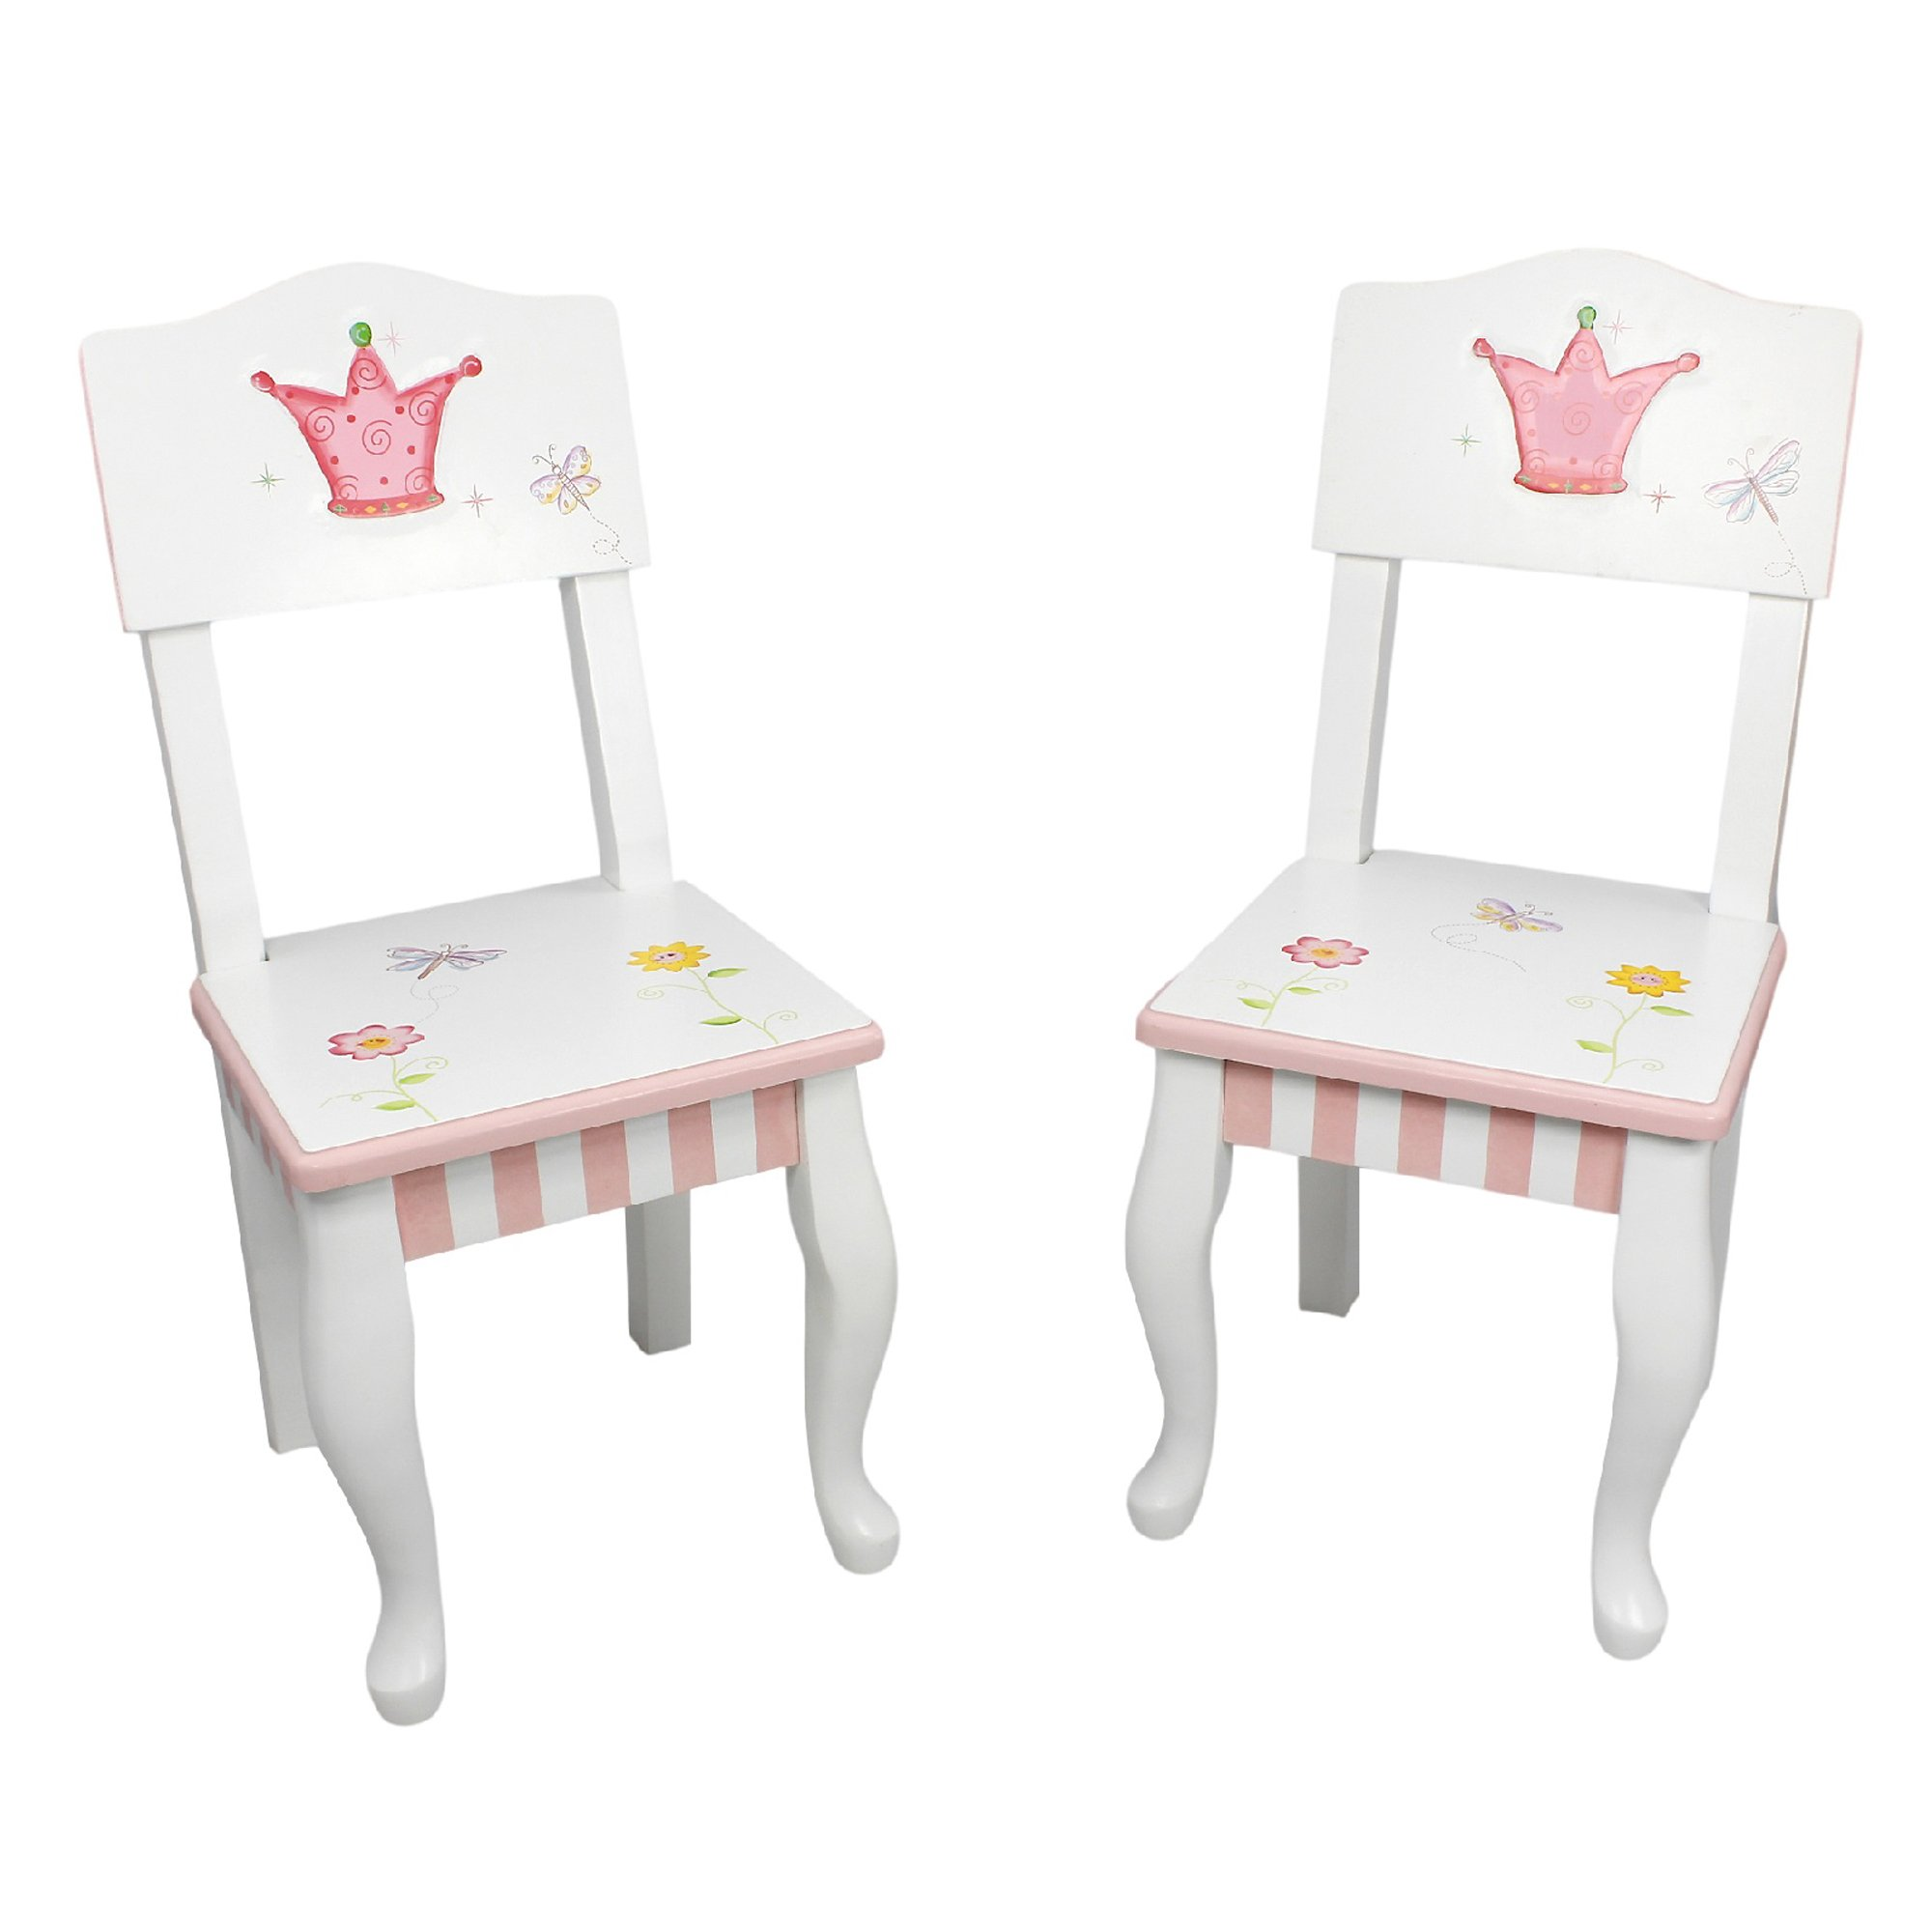 Fantasy Fields - Princess & Frog Thematic Hand Crafted Kids Wooden Table and 2 Chairs Set  Imagination Inspiring Hand Crafted & Hand Painted Details   Non-Toxic, Lead Free Water-based Paint by Fantasy Fields (Image #8)